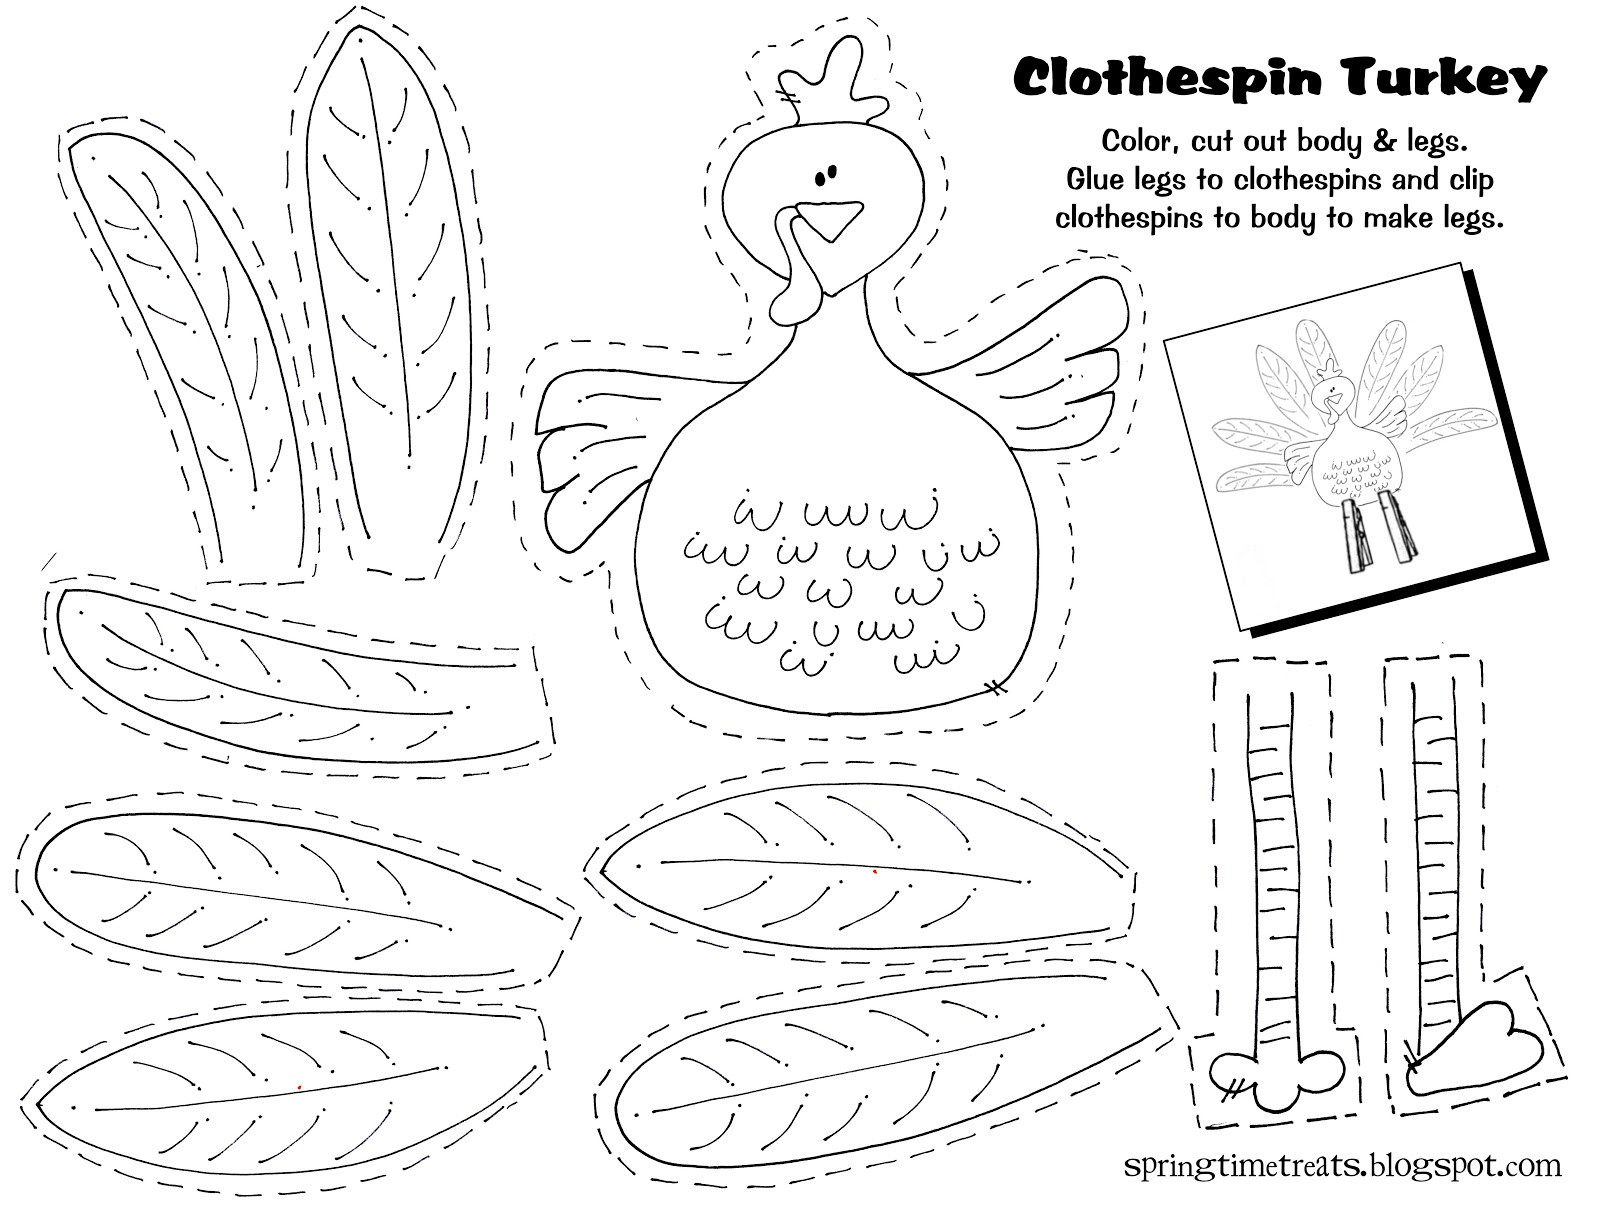 A Turkey For Thanksgiving Activity  Spring Time Treats Clothespin Turkey